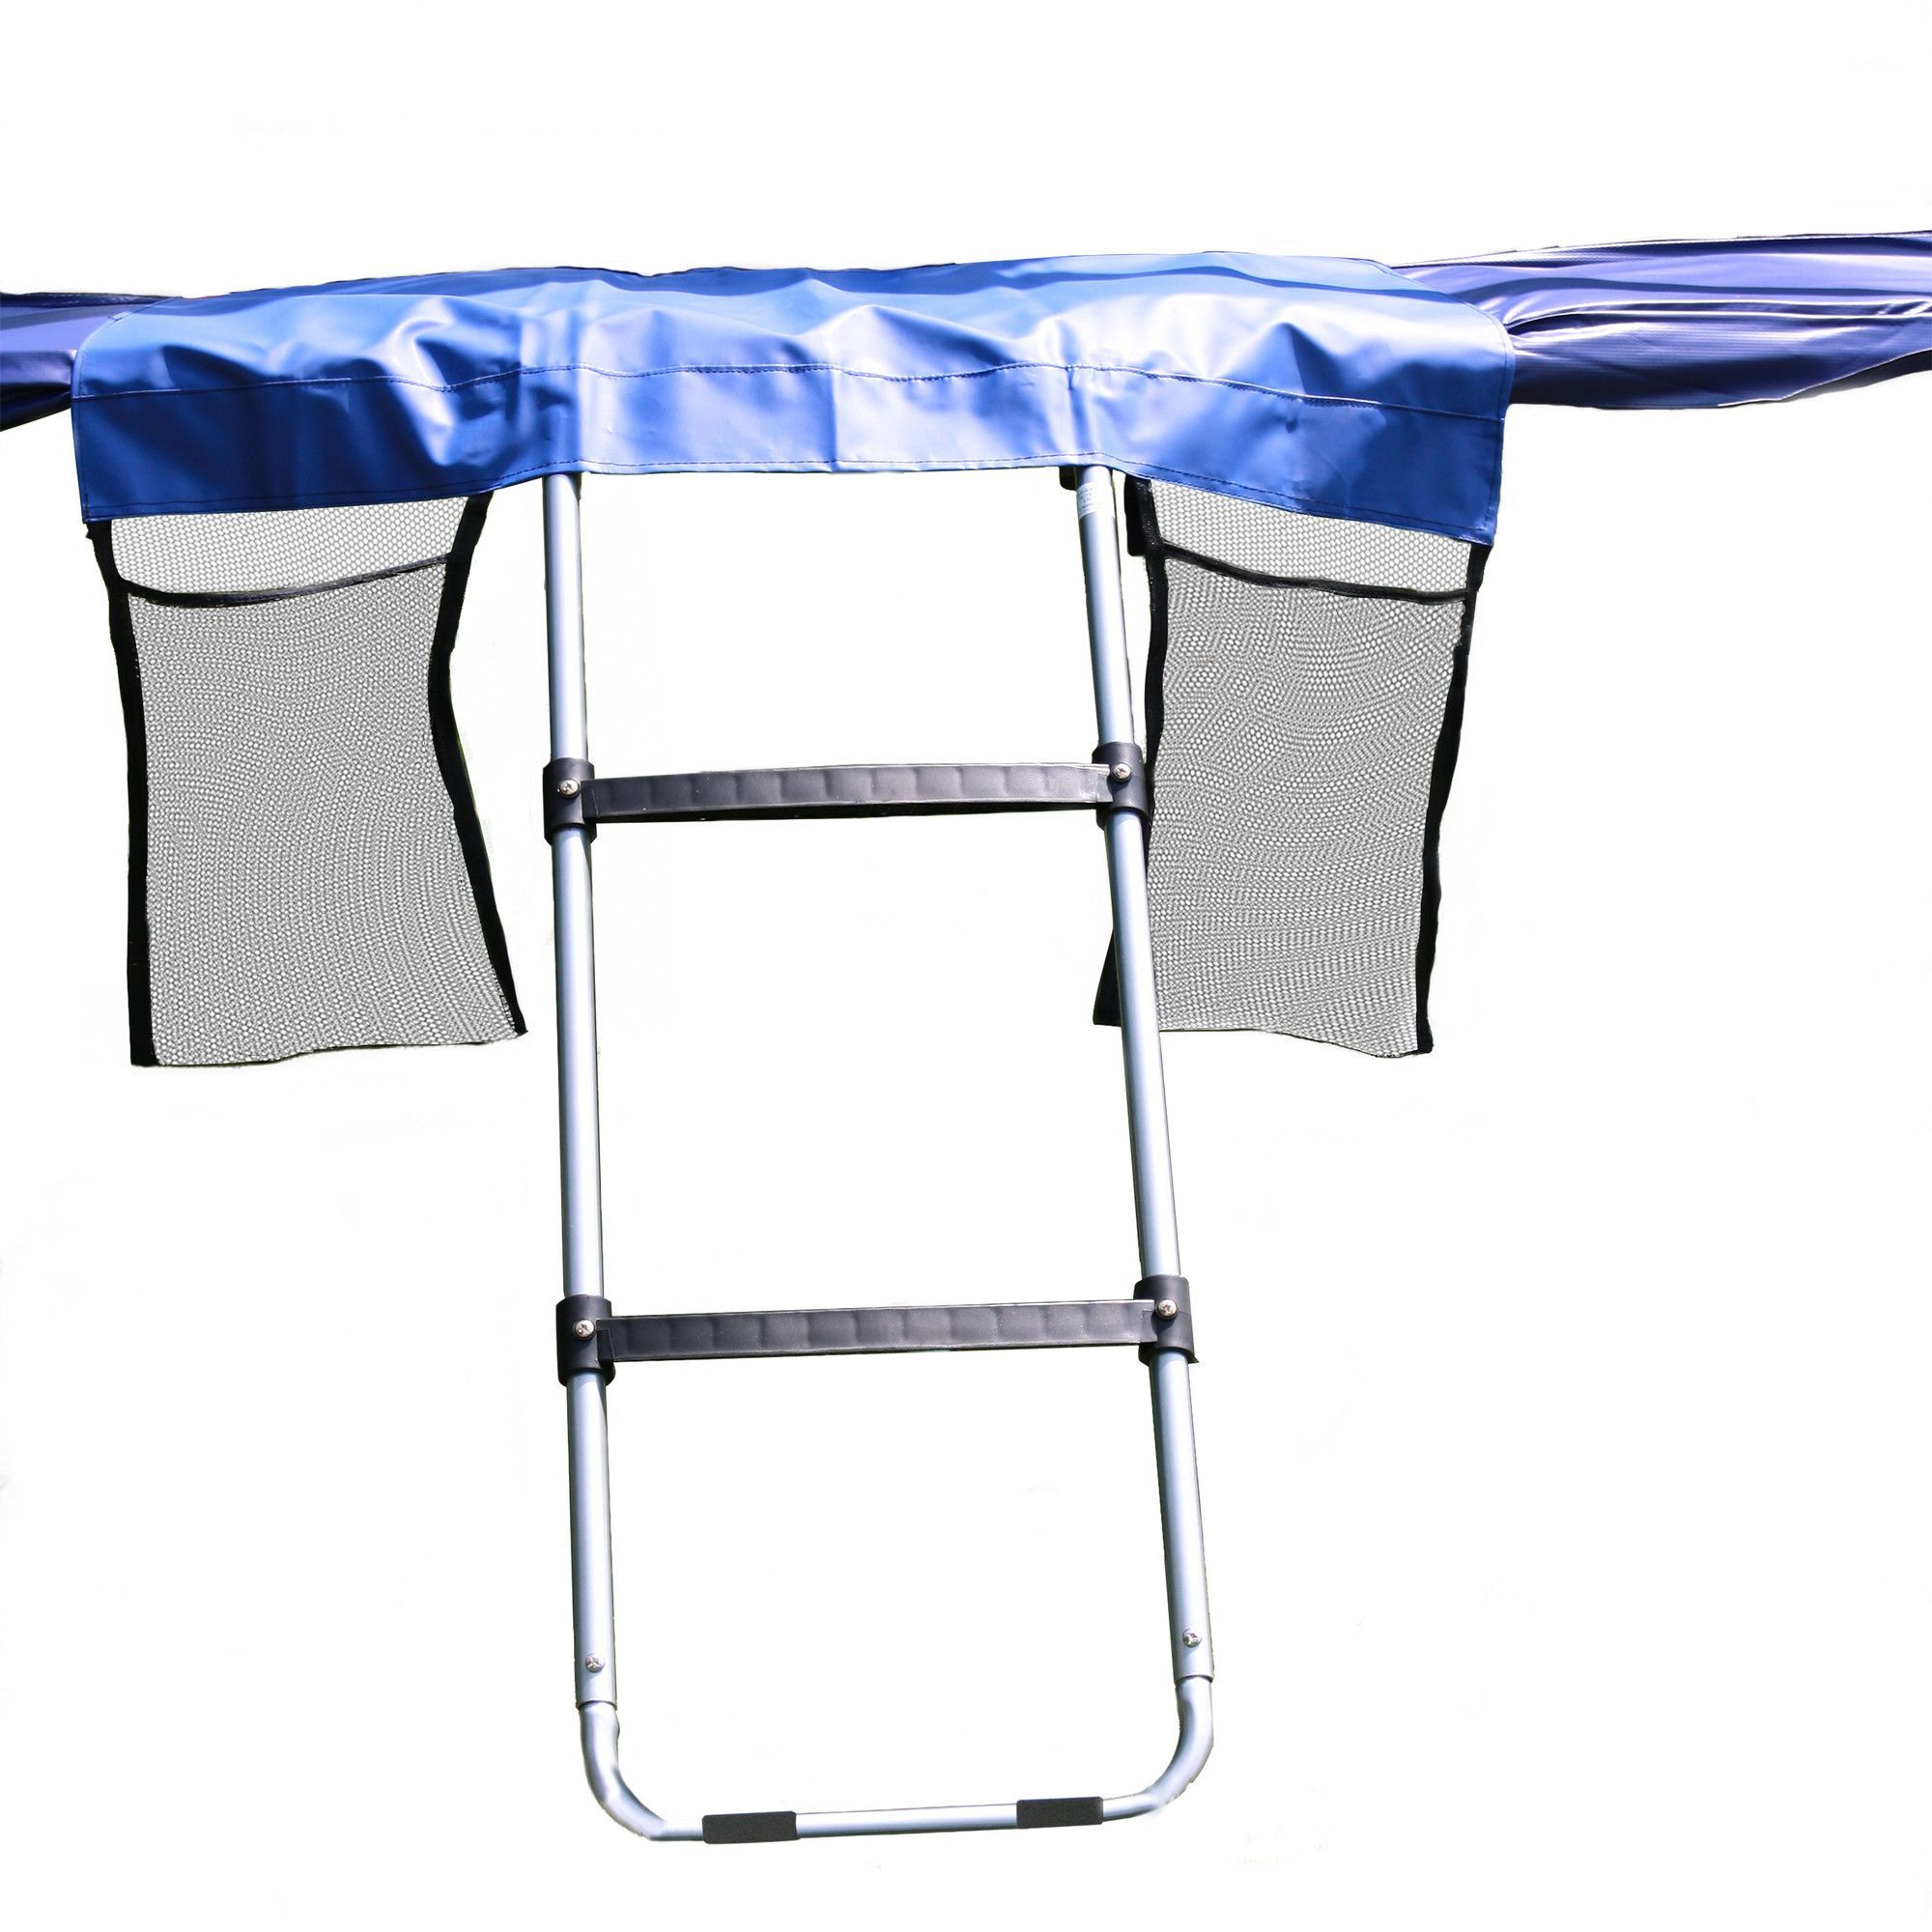 Wide-Step Trampoline Ladder Kit